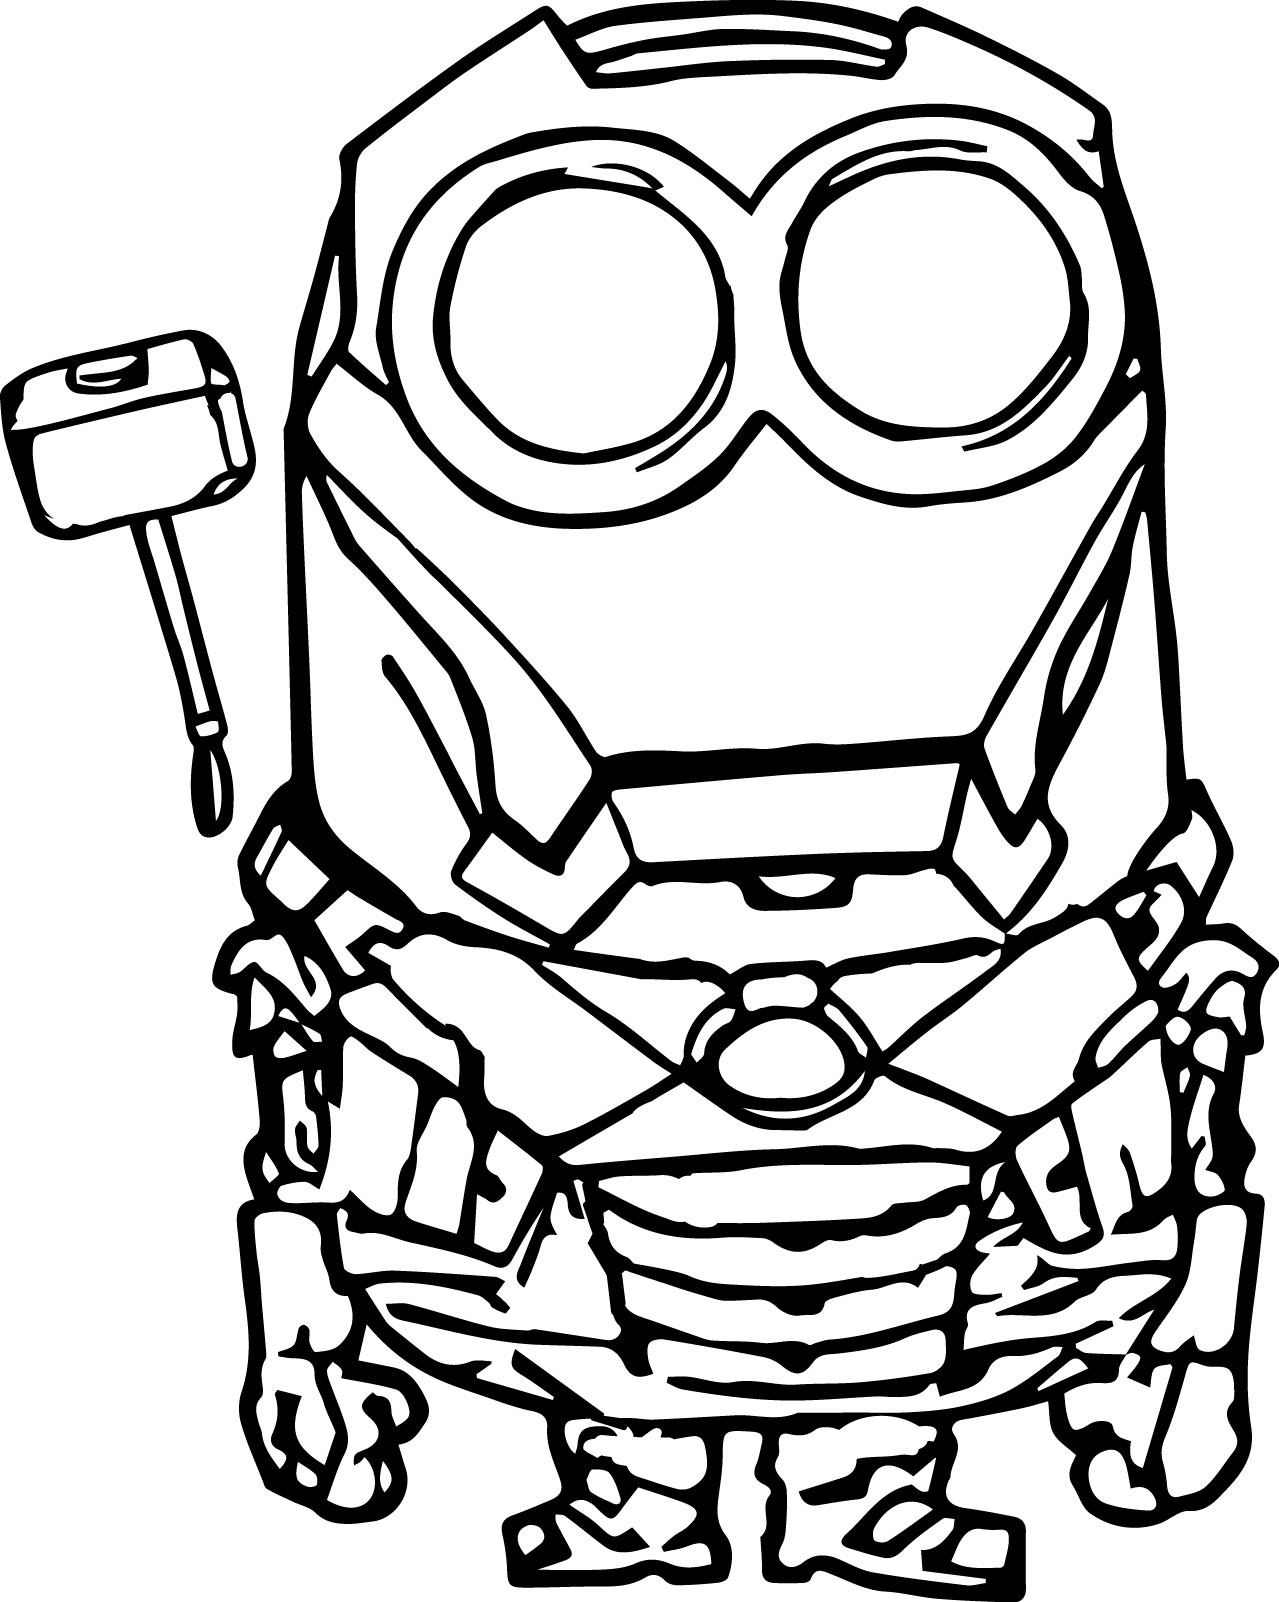 robot minion coloring page - Minion Coloring Pages